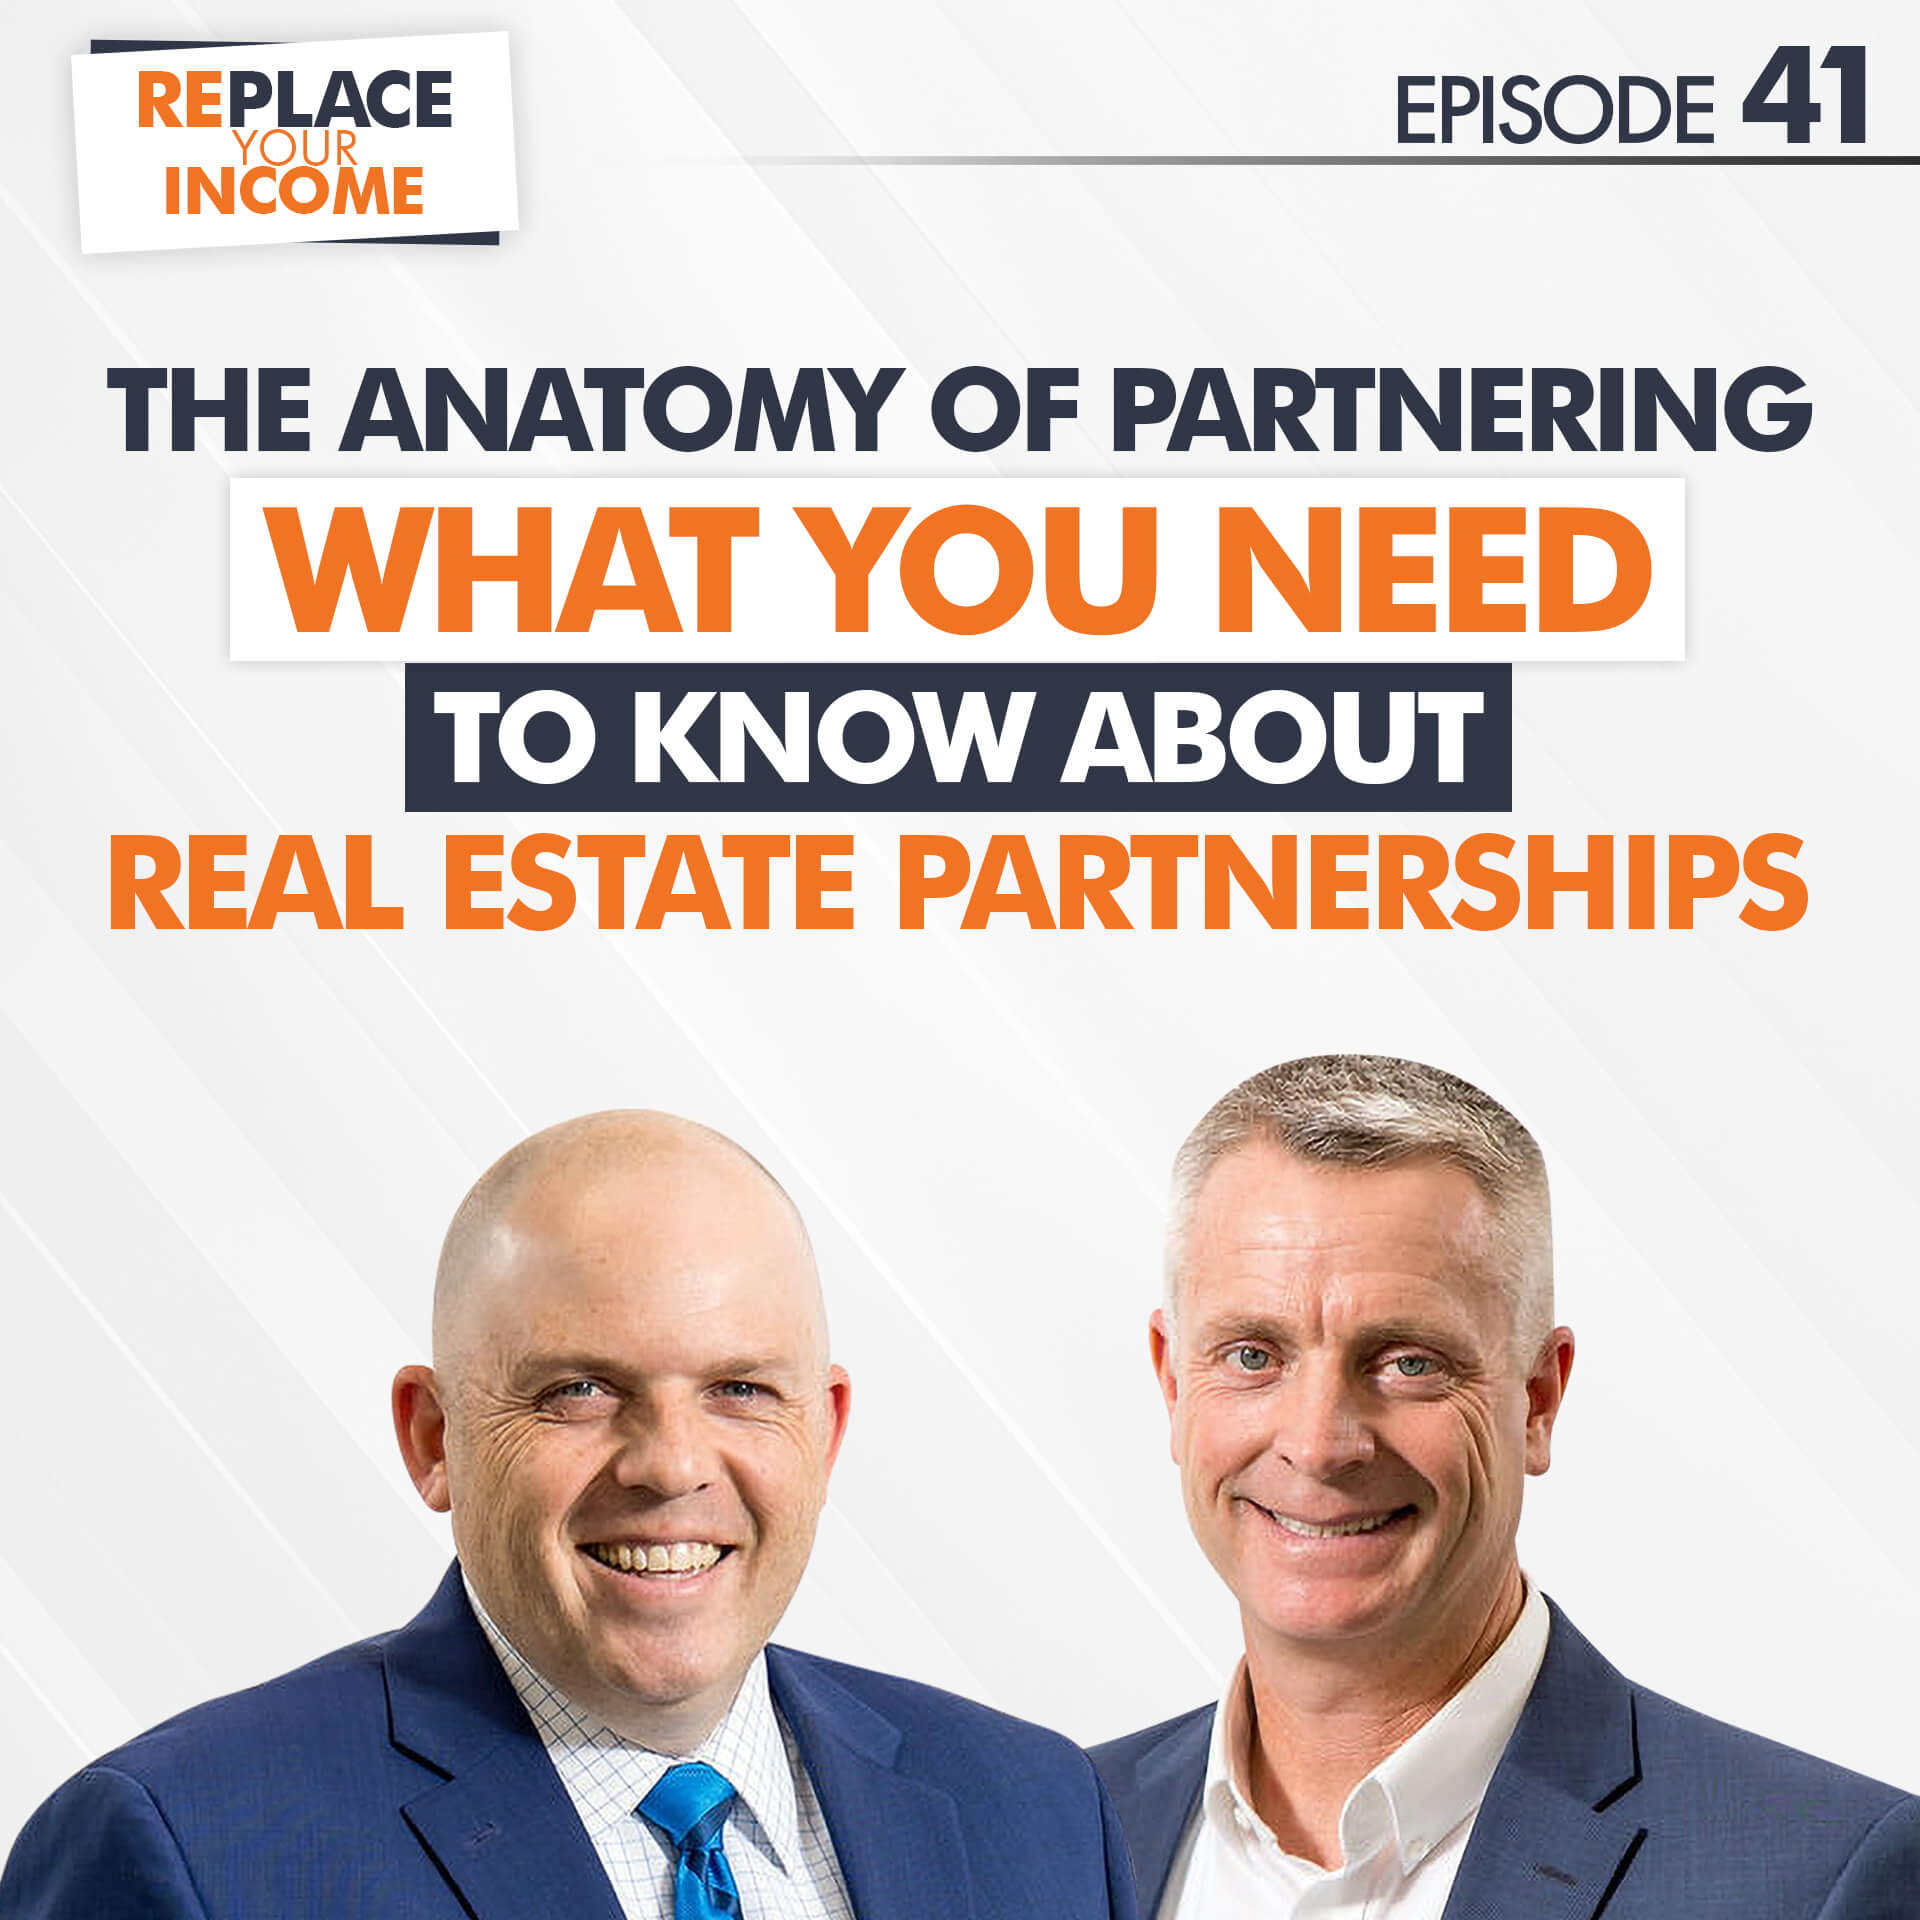 steve earl kevin clayson dfy real estate partnerships